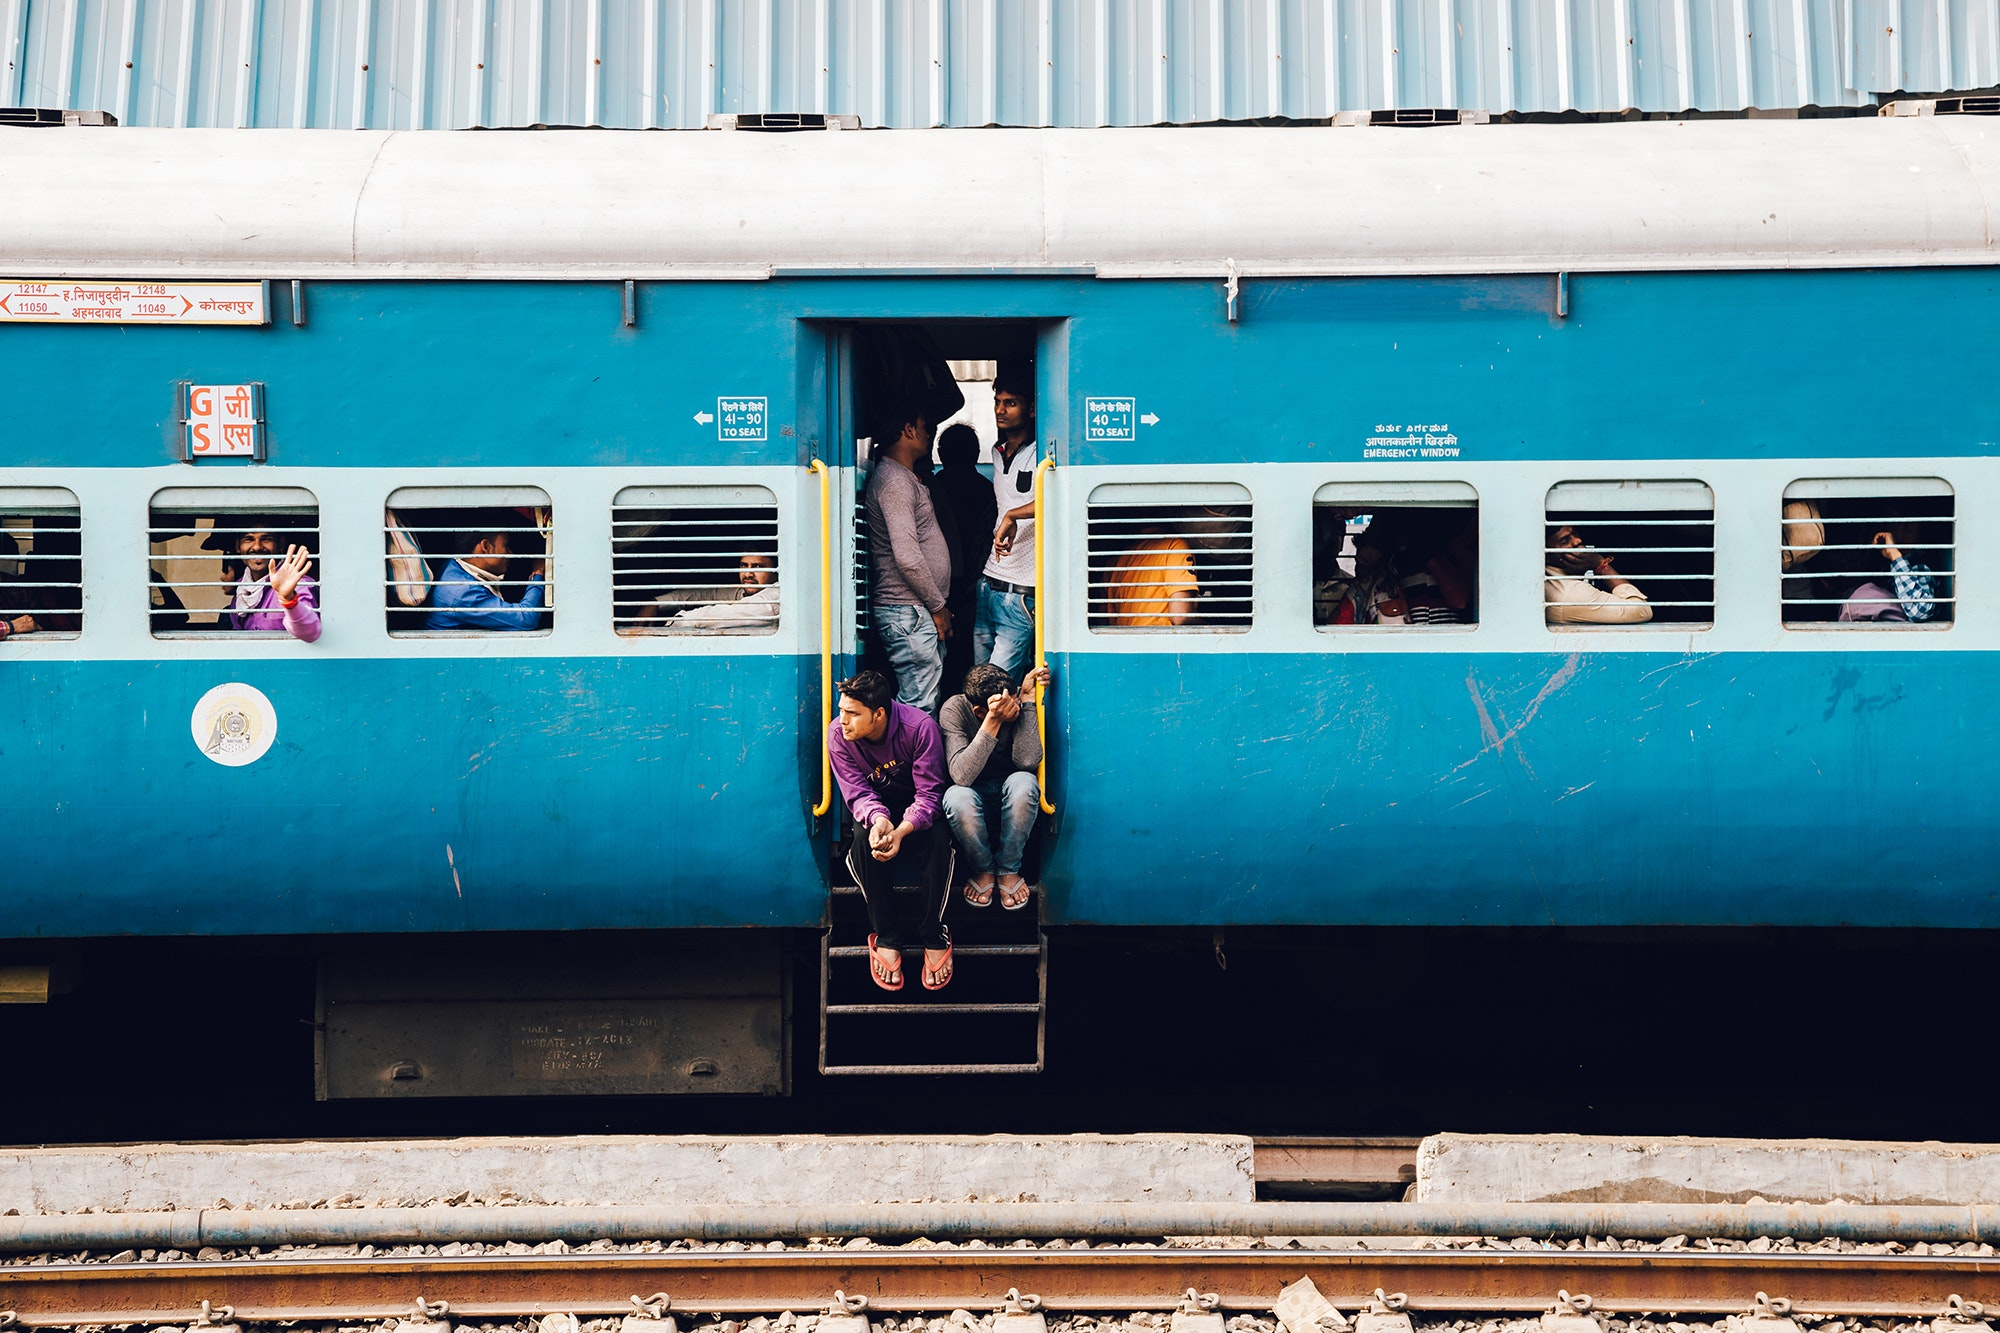 Passengers in the doorway of an Indian train